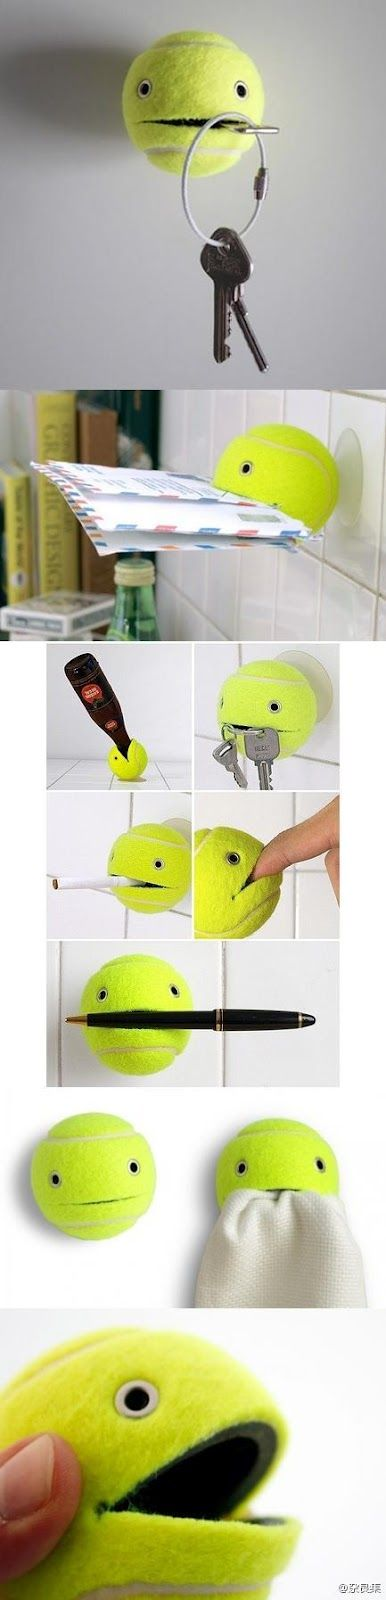 haaaha: Stuff, Art, Diy Craft, Craft Ideas, Tennis Balls, Tennis Ball